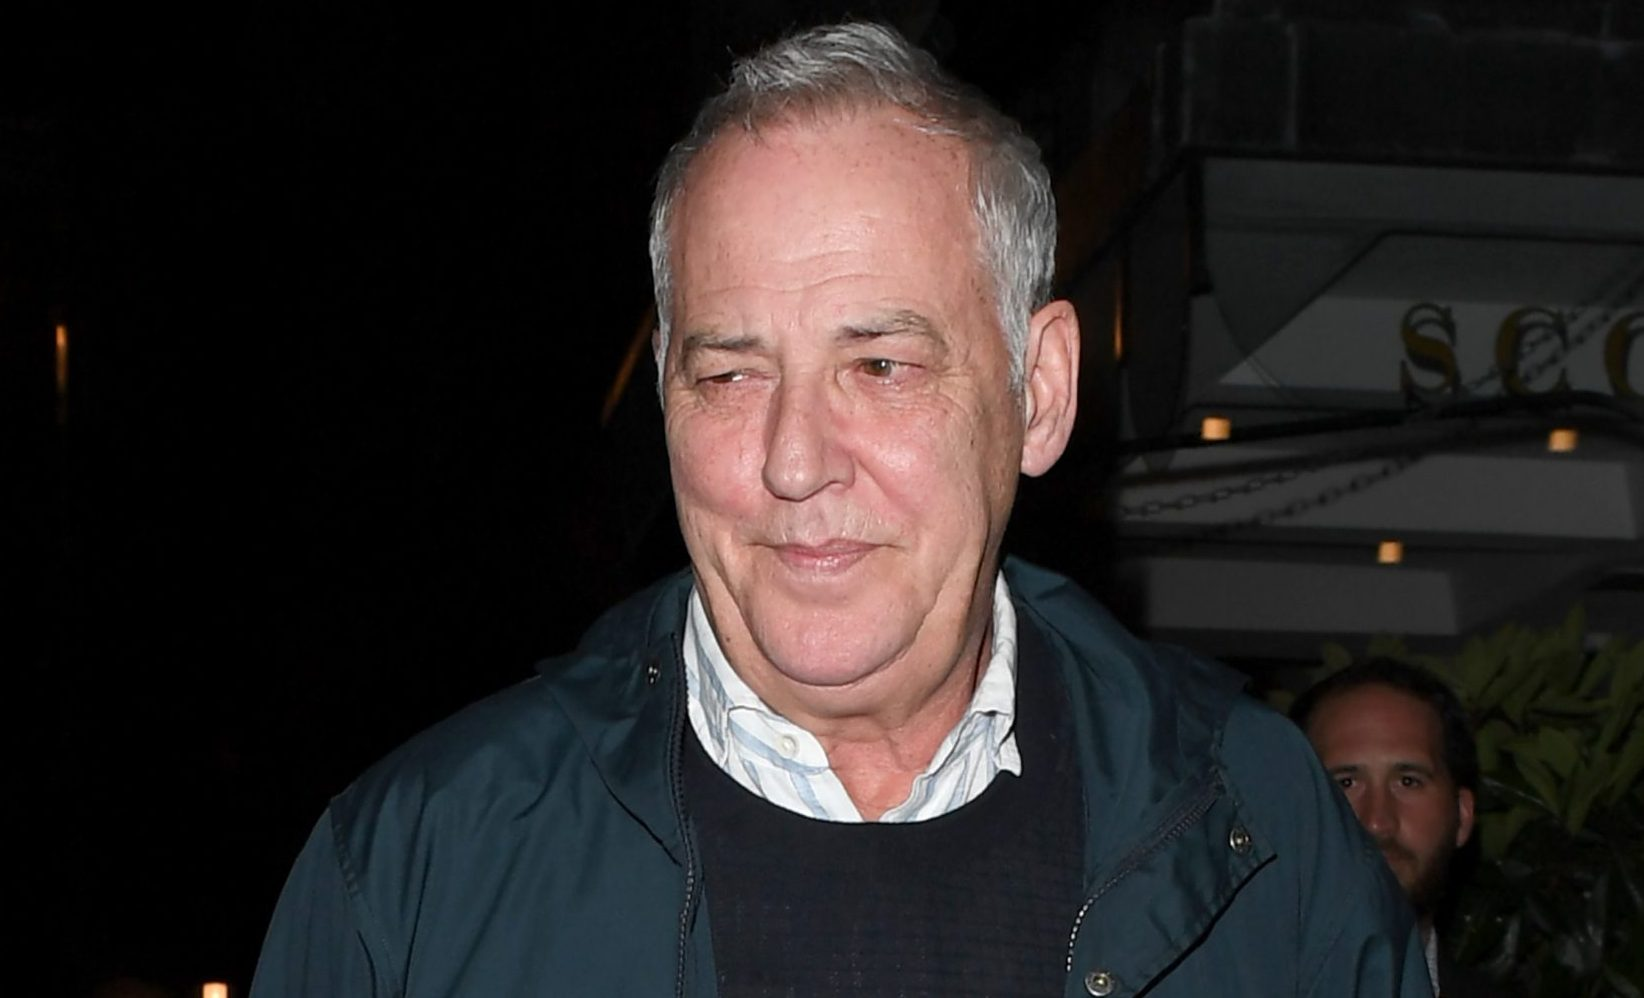 Michael Barrymore to bring back Strike It Lucky